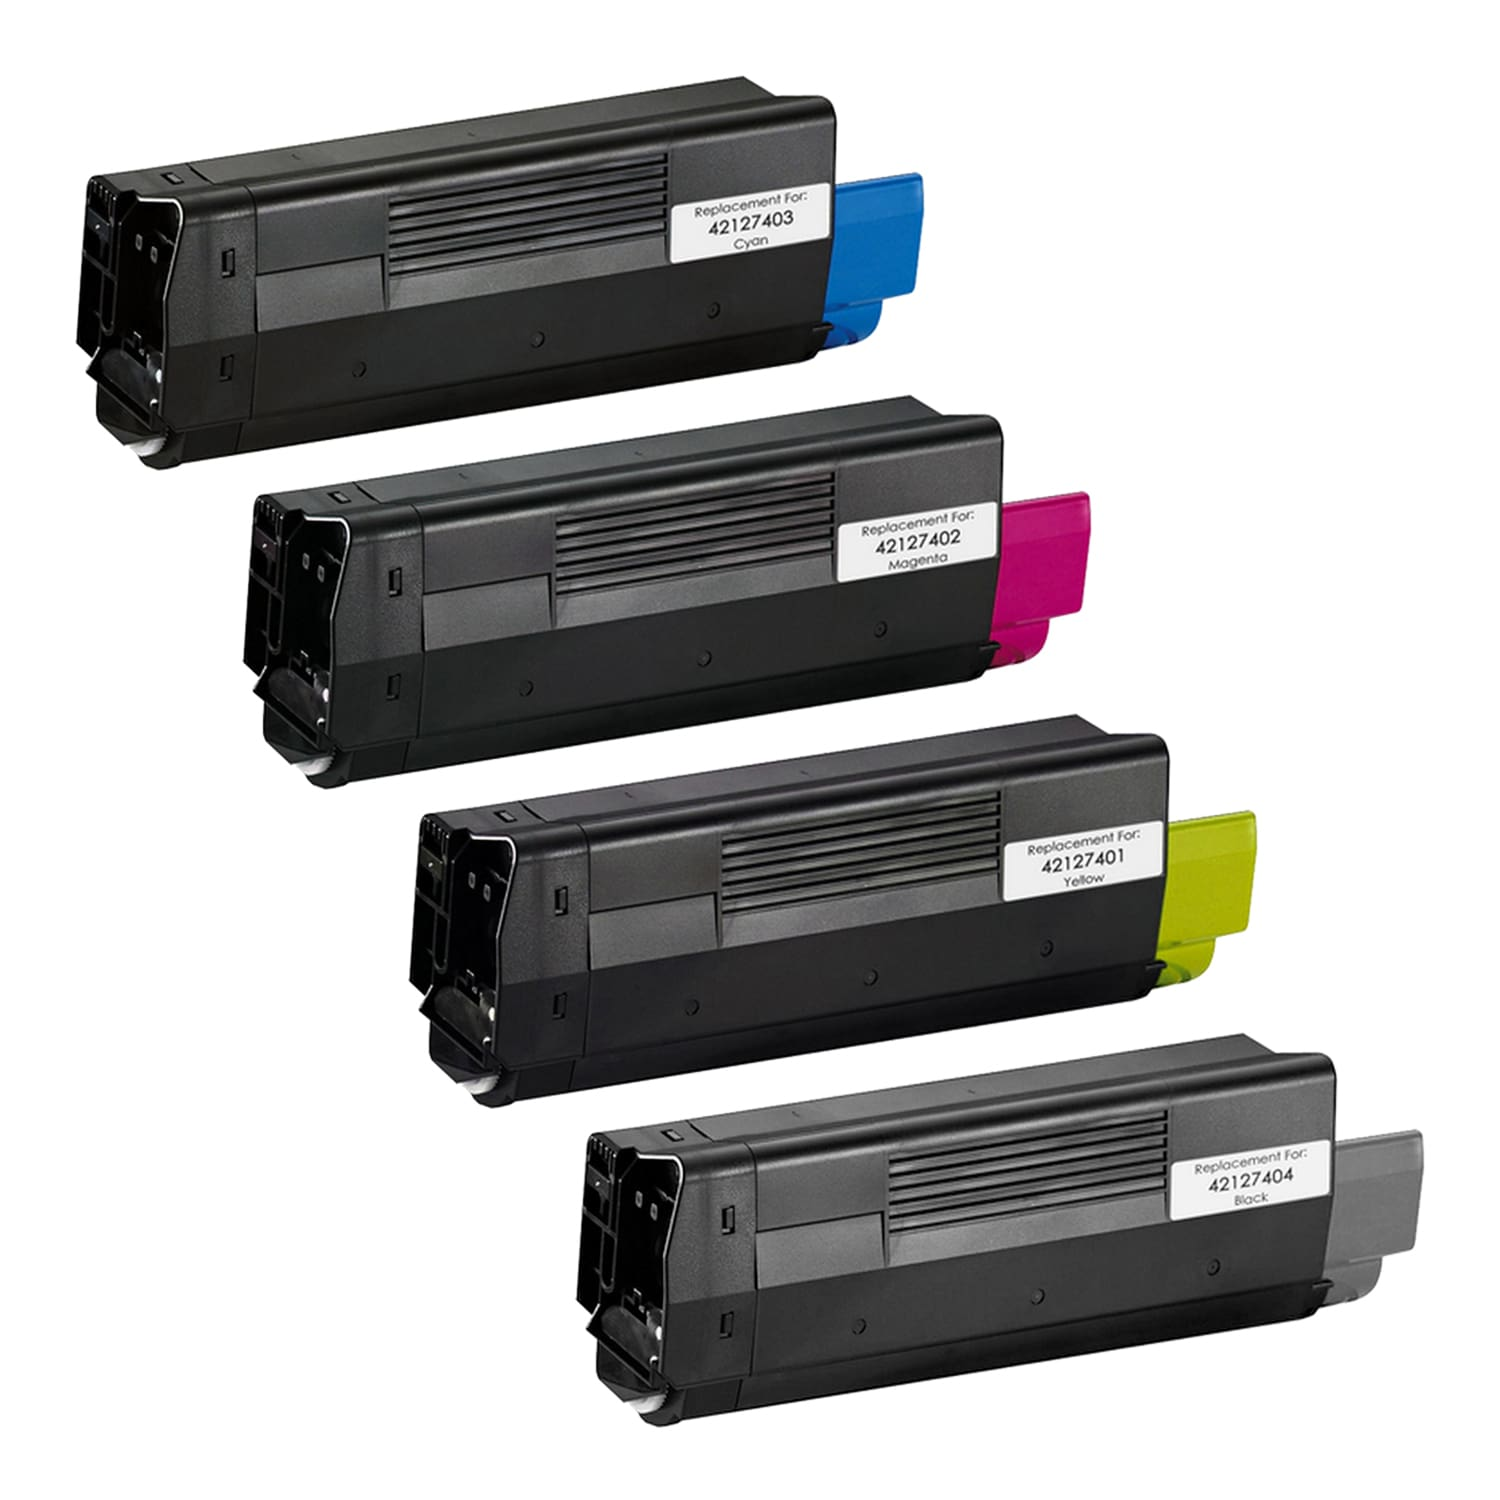 Remanufactured Okidata C5100 Toner High Capacity Pack - 4 Cartridges